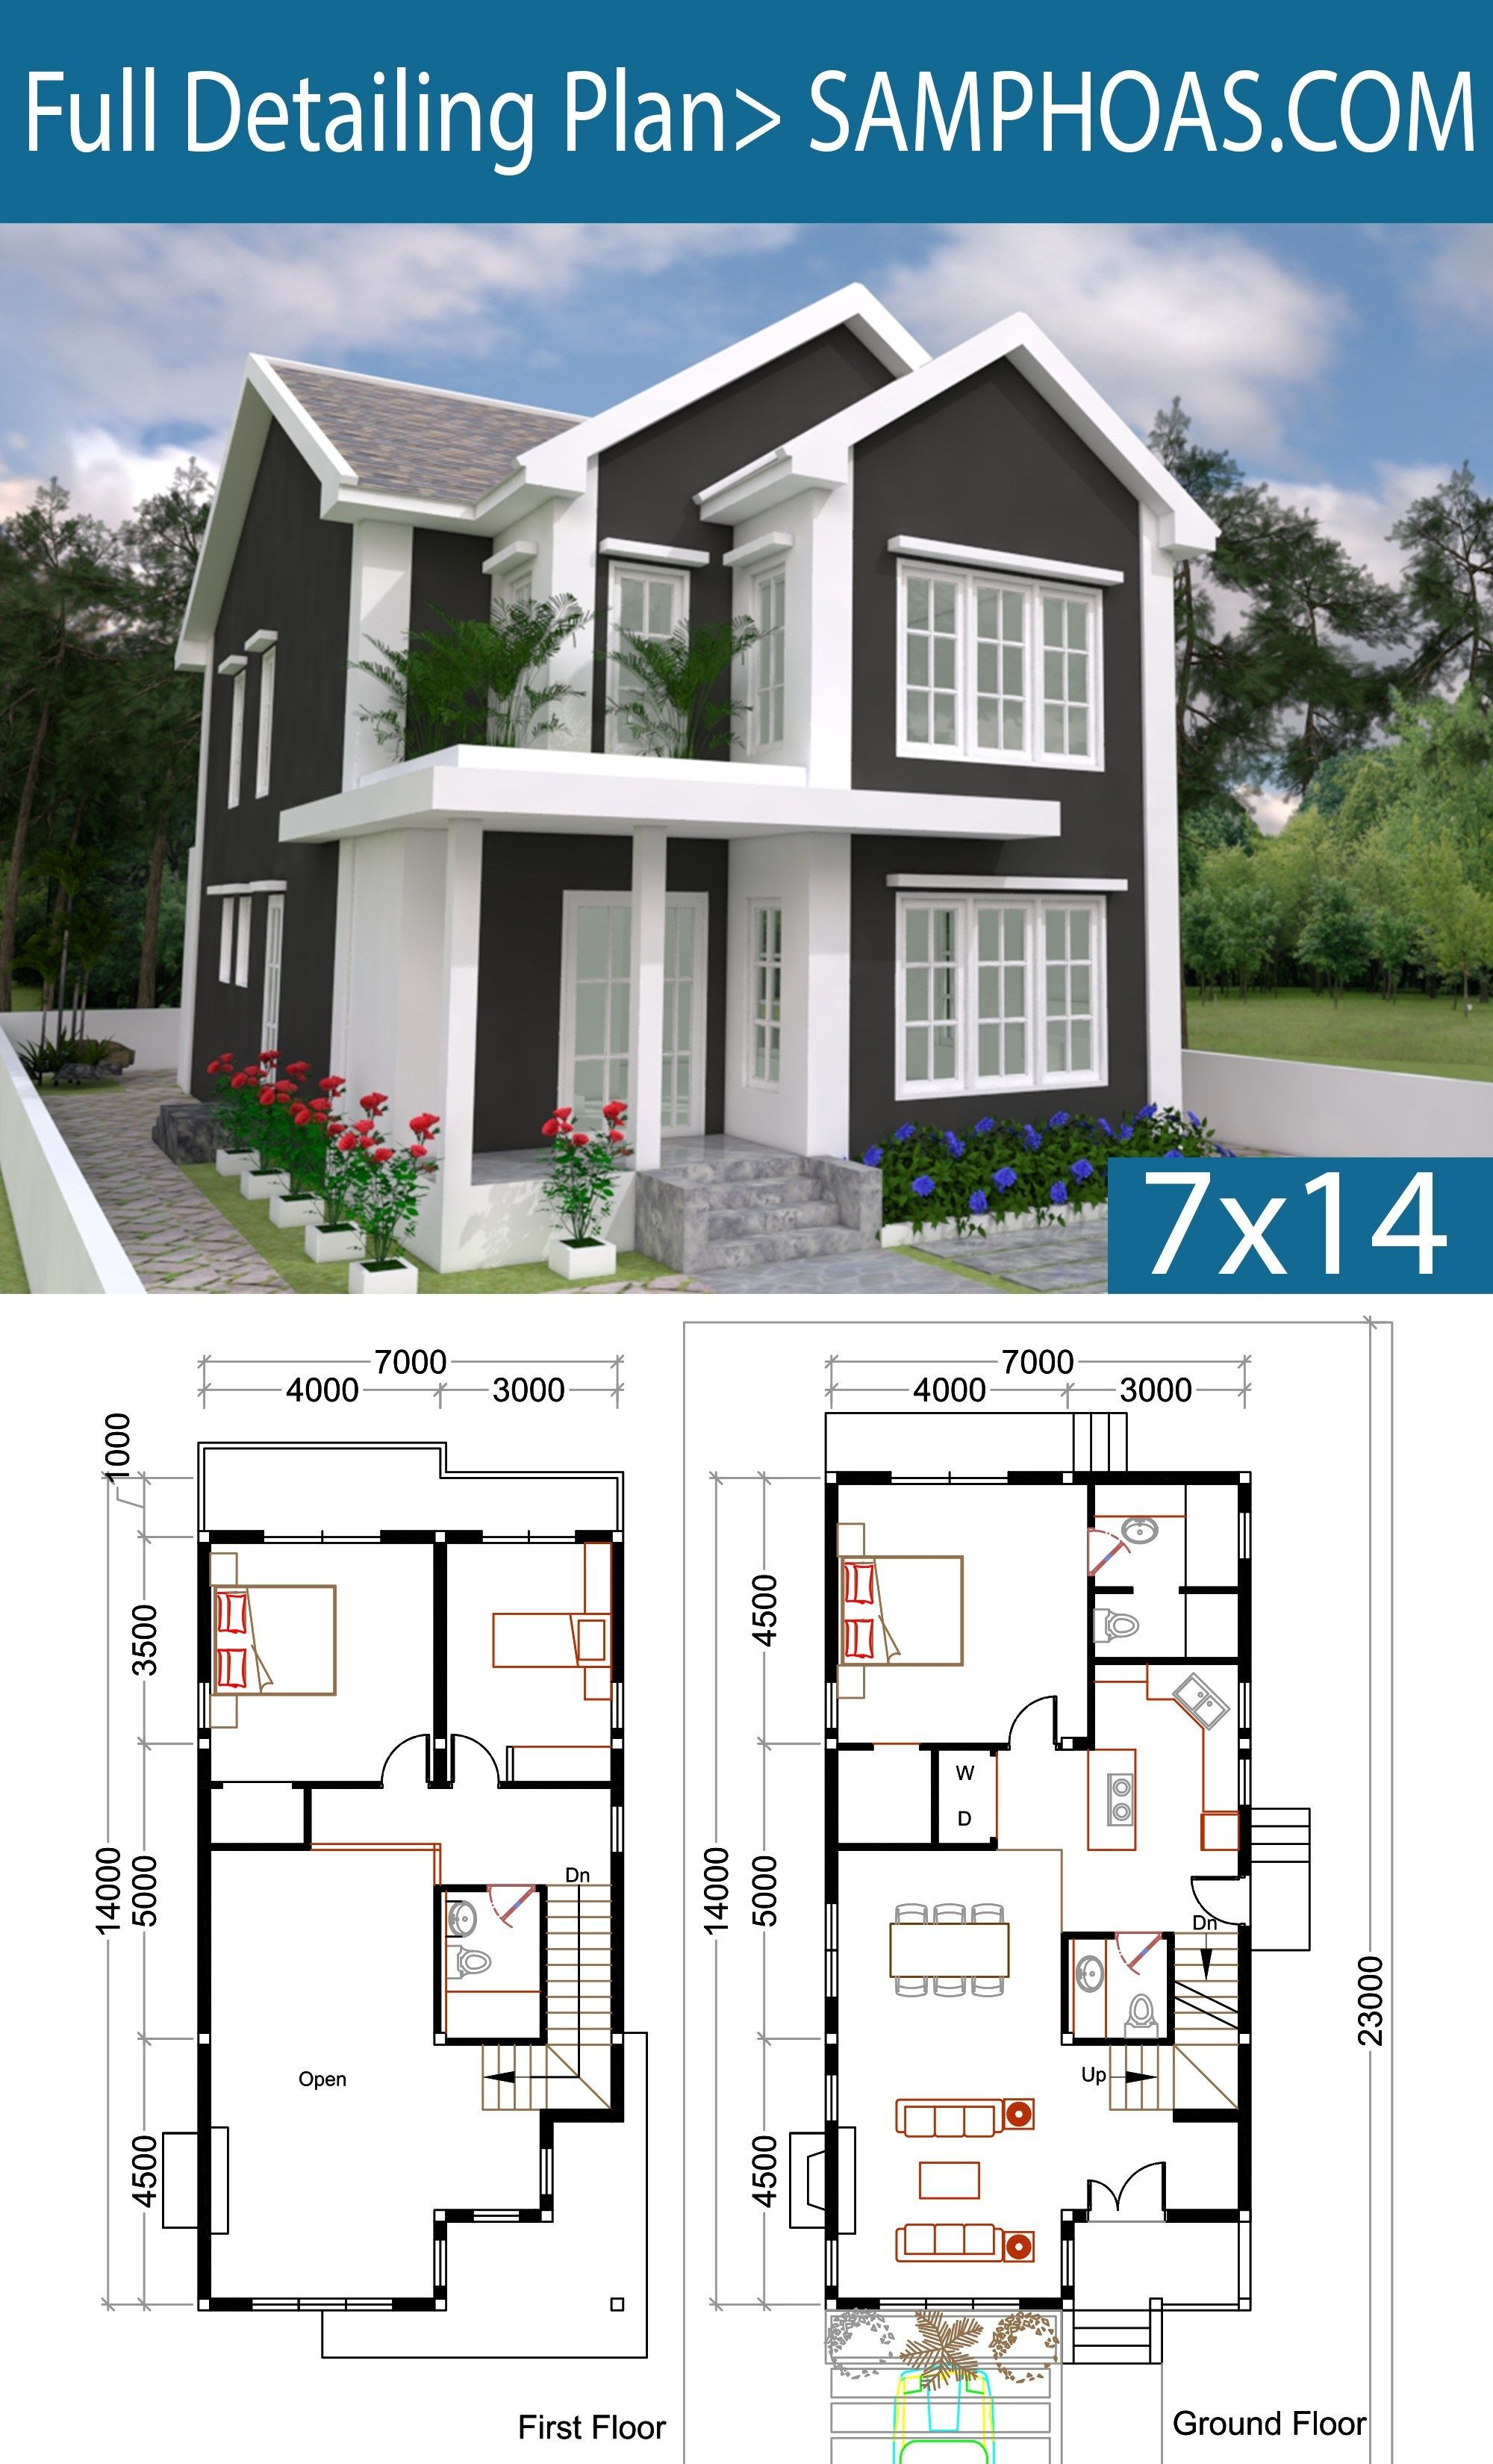 3 Bedrooms Home Plan 7x14m This Villa Is Modeling By Sam Architect With 2 Stories Level It S Has 3 Bedro House Plans Three Bedroom House Plan Sims House Plans